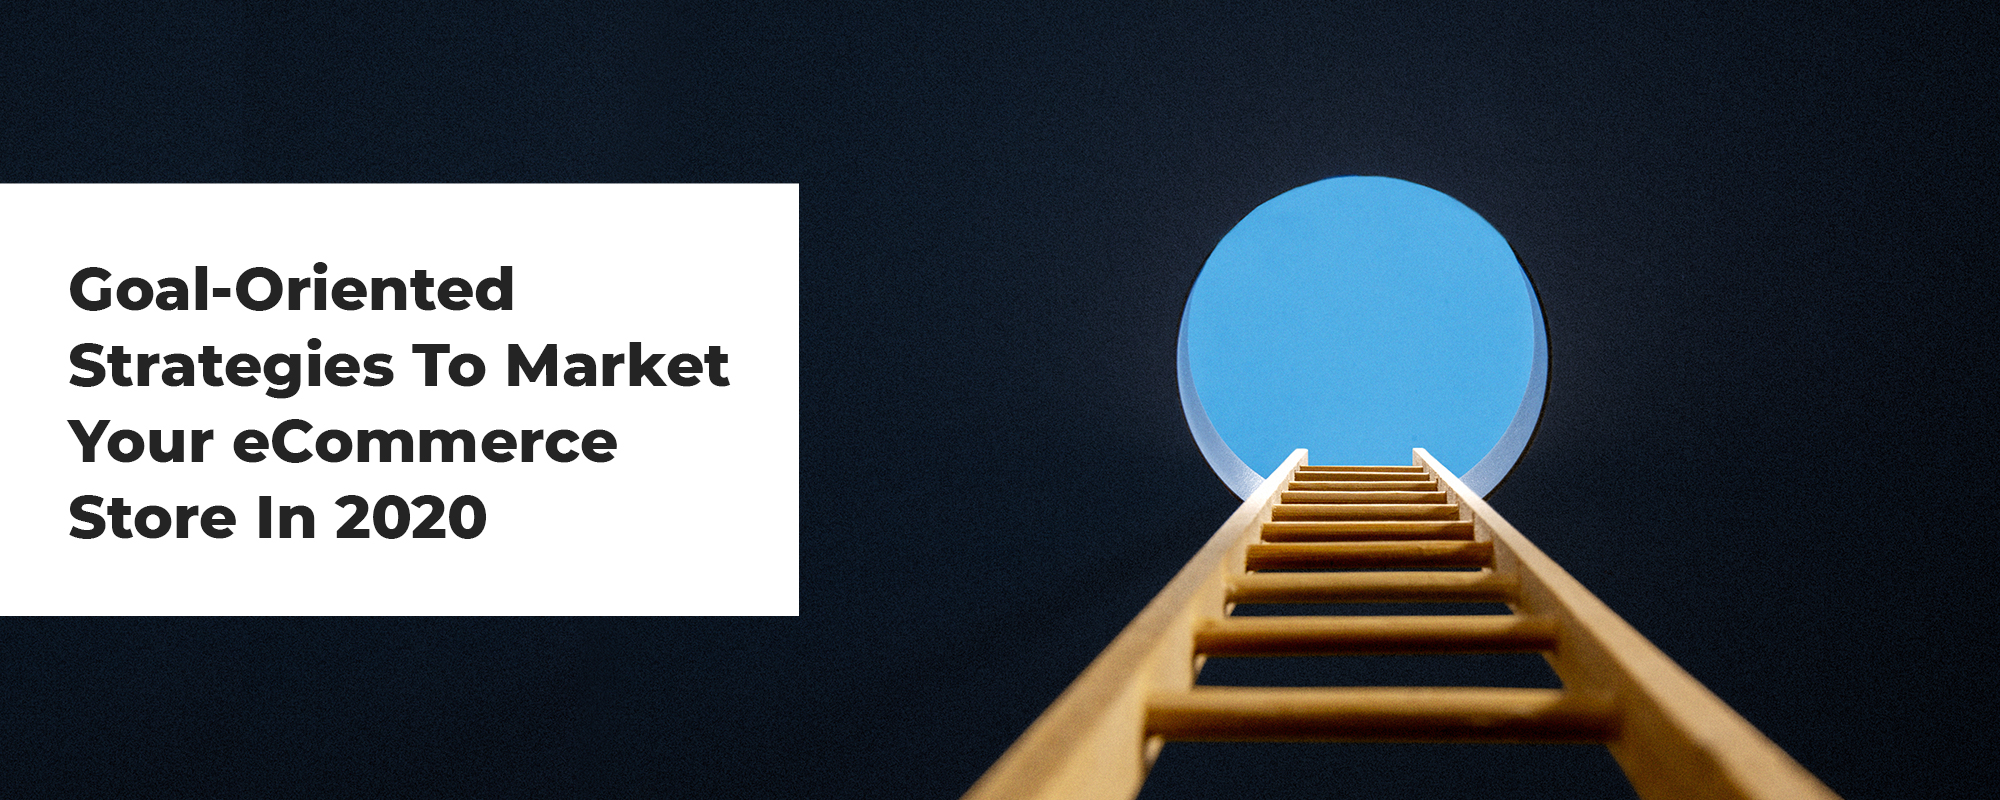 10 Goal-Oriented Strategies To Market Your Ecommerce Store In 2020